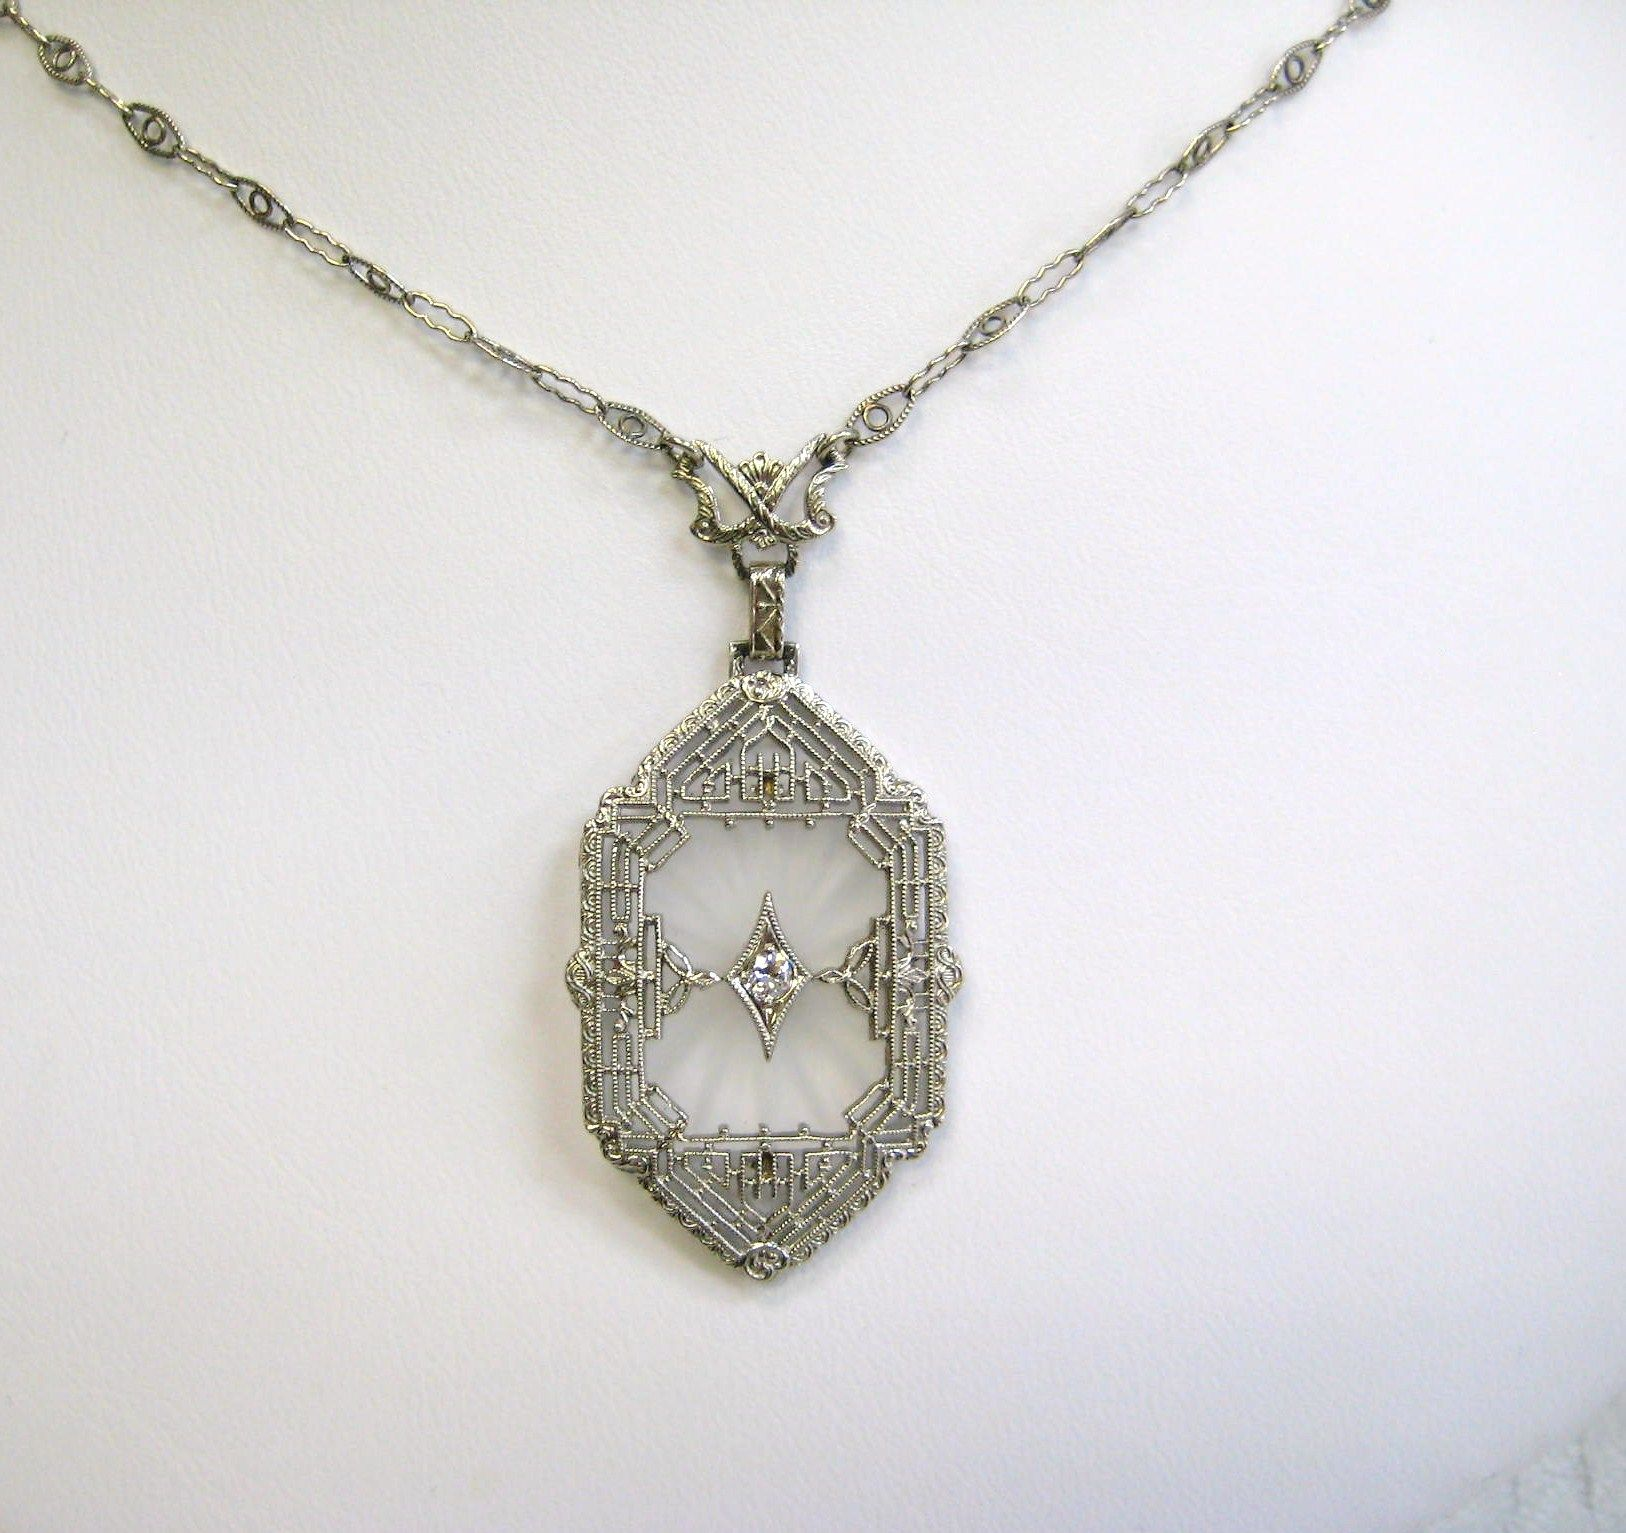 Vintage necklaces vintage crystal and diamond necklace vintage necklaces vintage crystal and diamond necklace mozeypictures Image collections